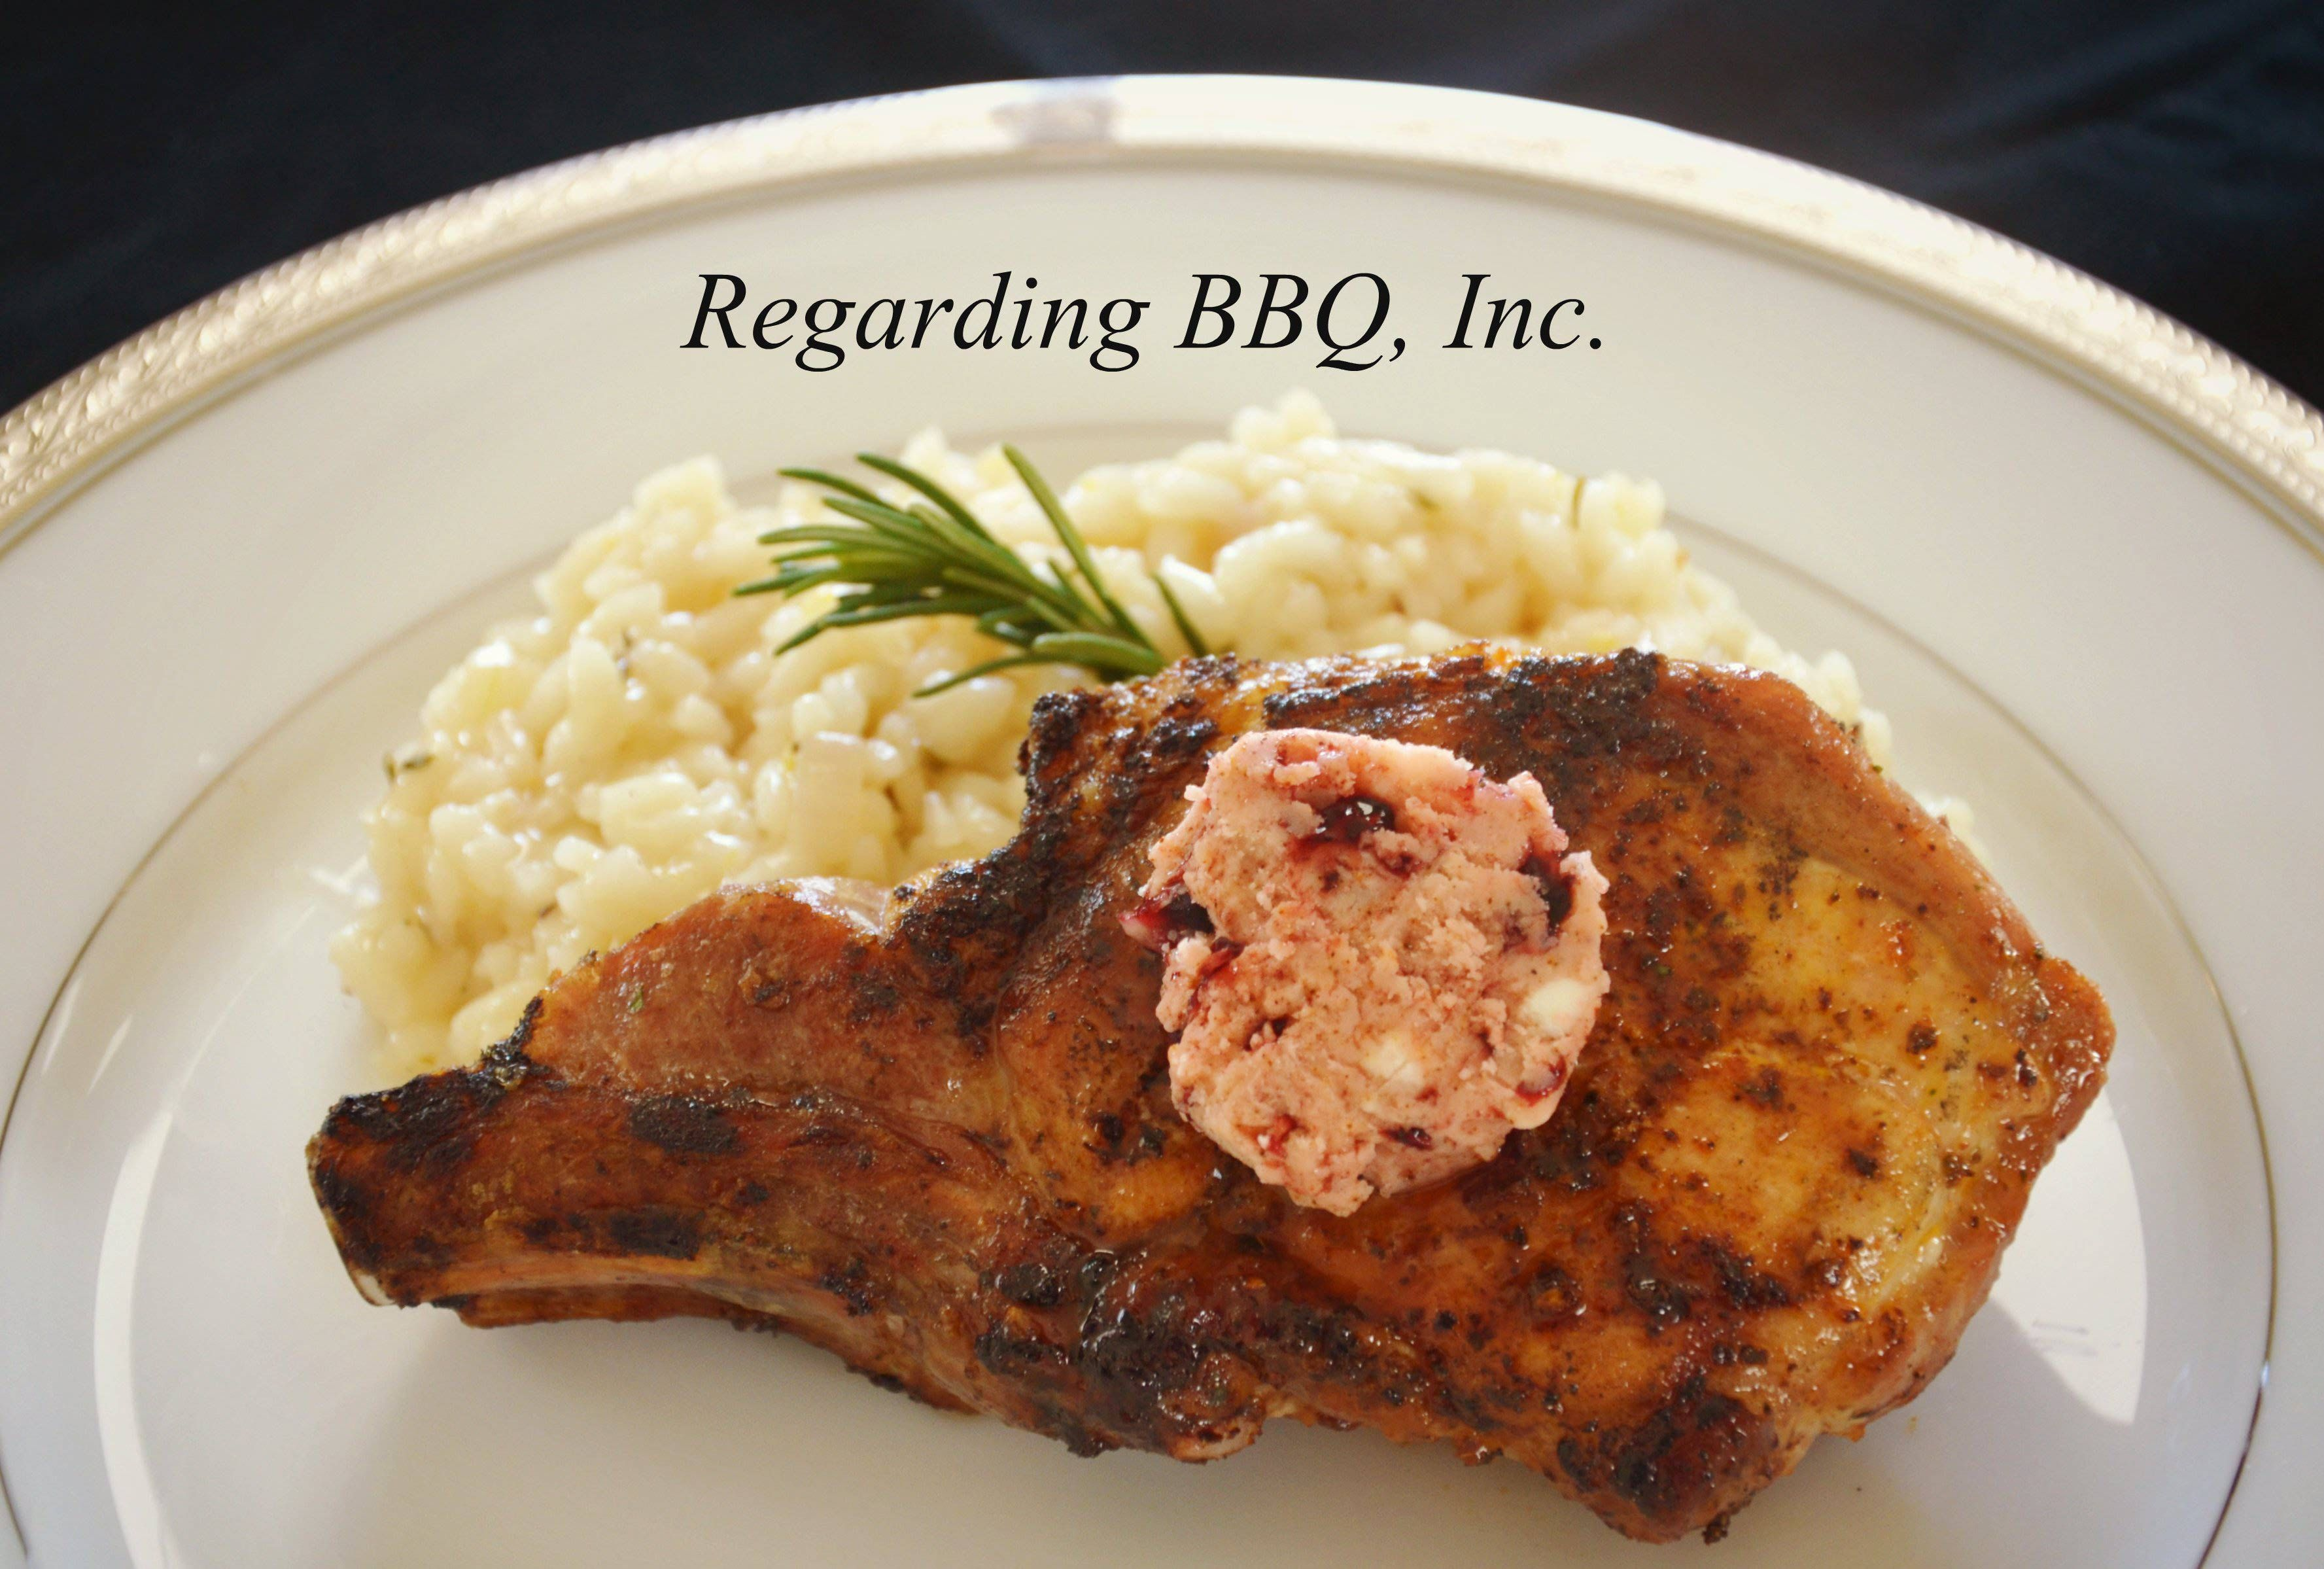 Grilled Pork Loin Chops with Blackberry Butter